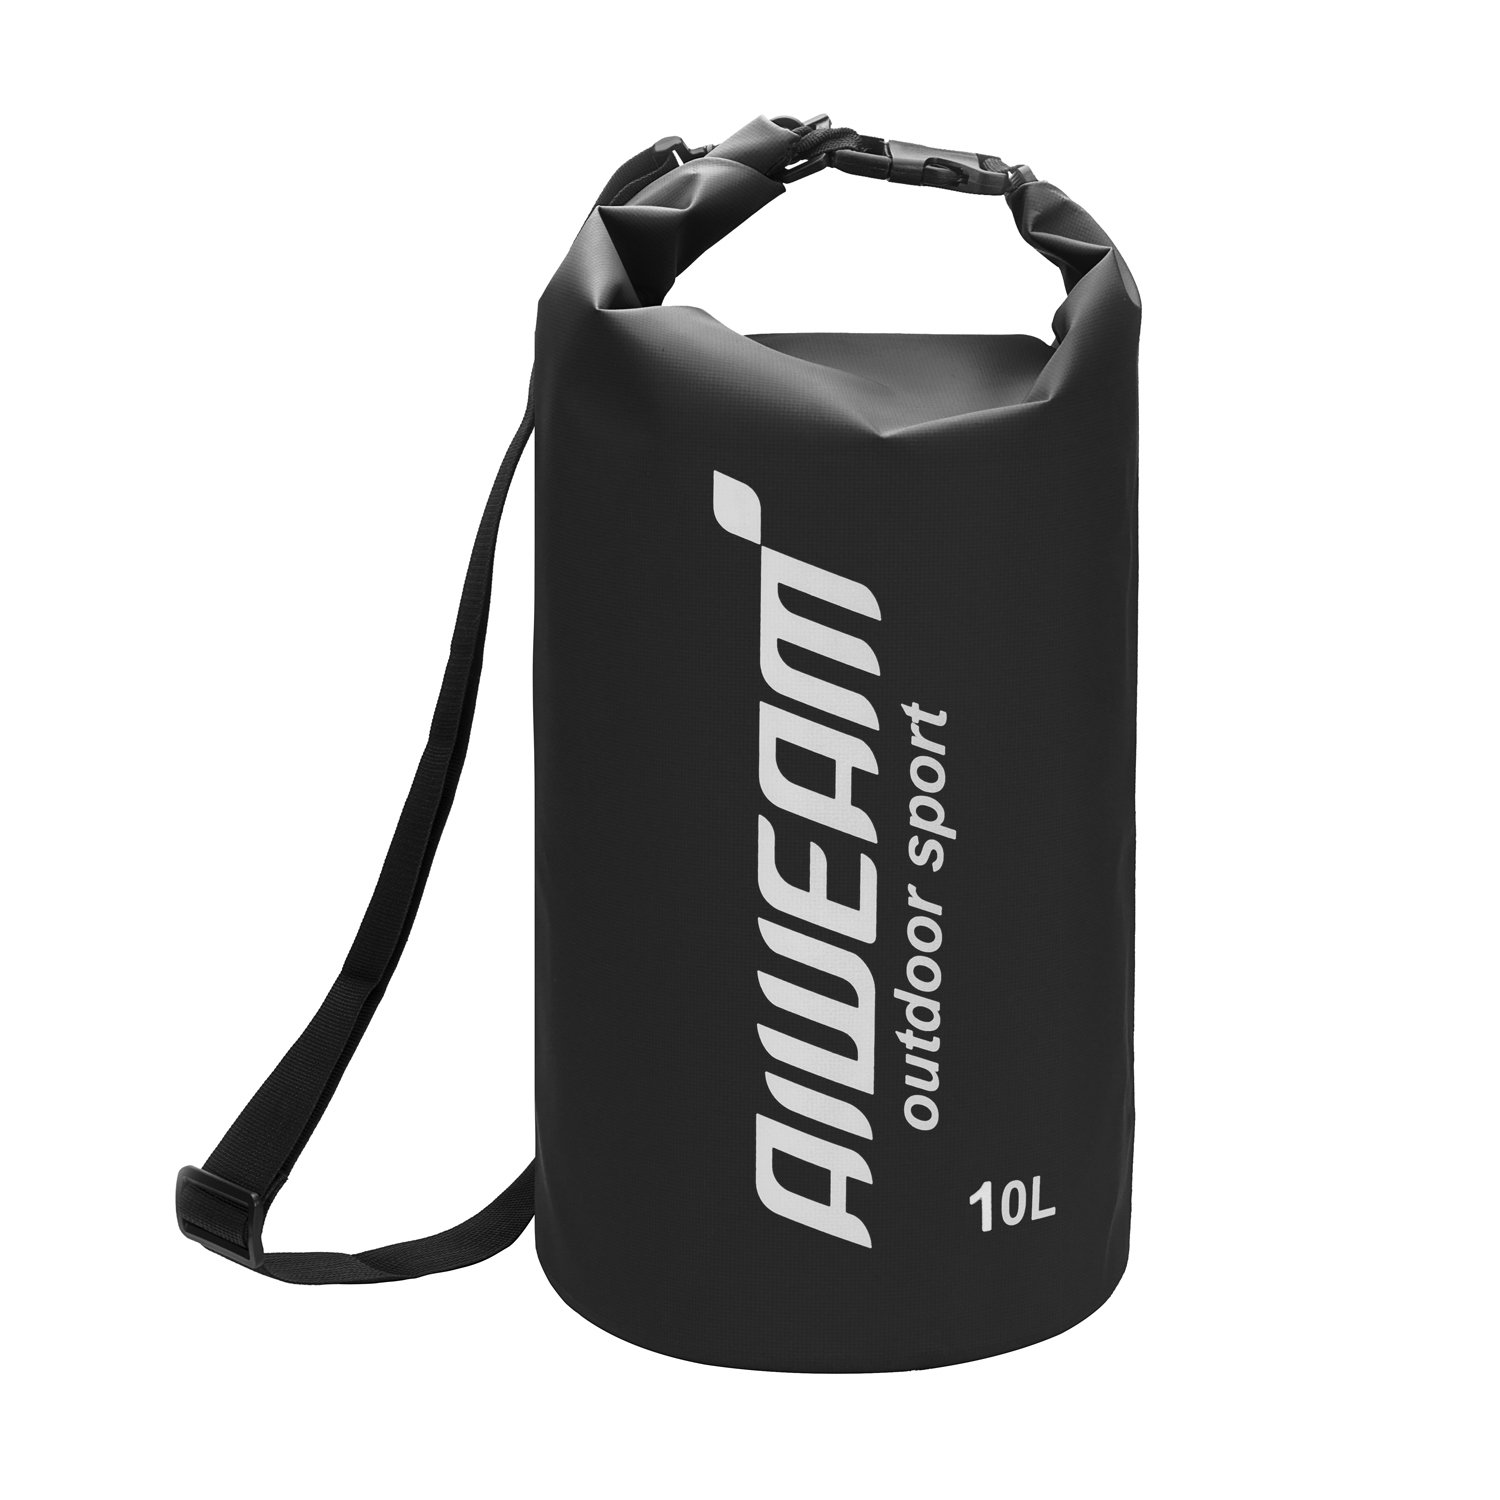 eb1a85bff8f AIWEAM Waterproof Dry Bag 20l 10l - Small Dry Bags for Kayaking - Camping  Gear Roll Top Ocean Pack with IPX8 Waterproof Phone Case Great for Sailing  Boating ...